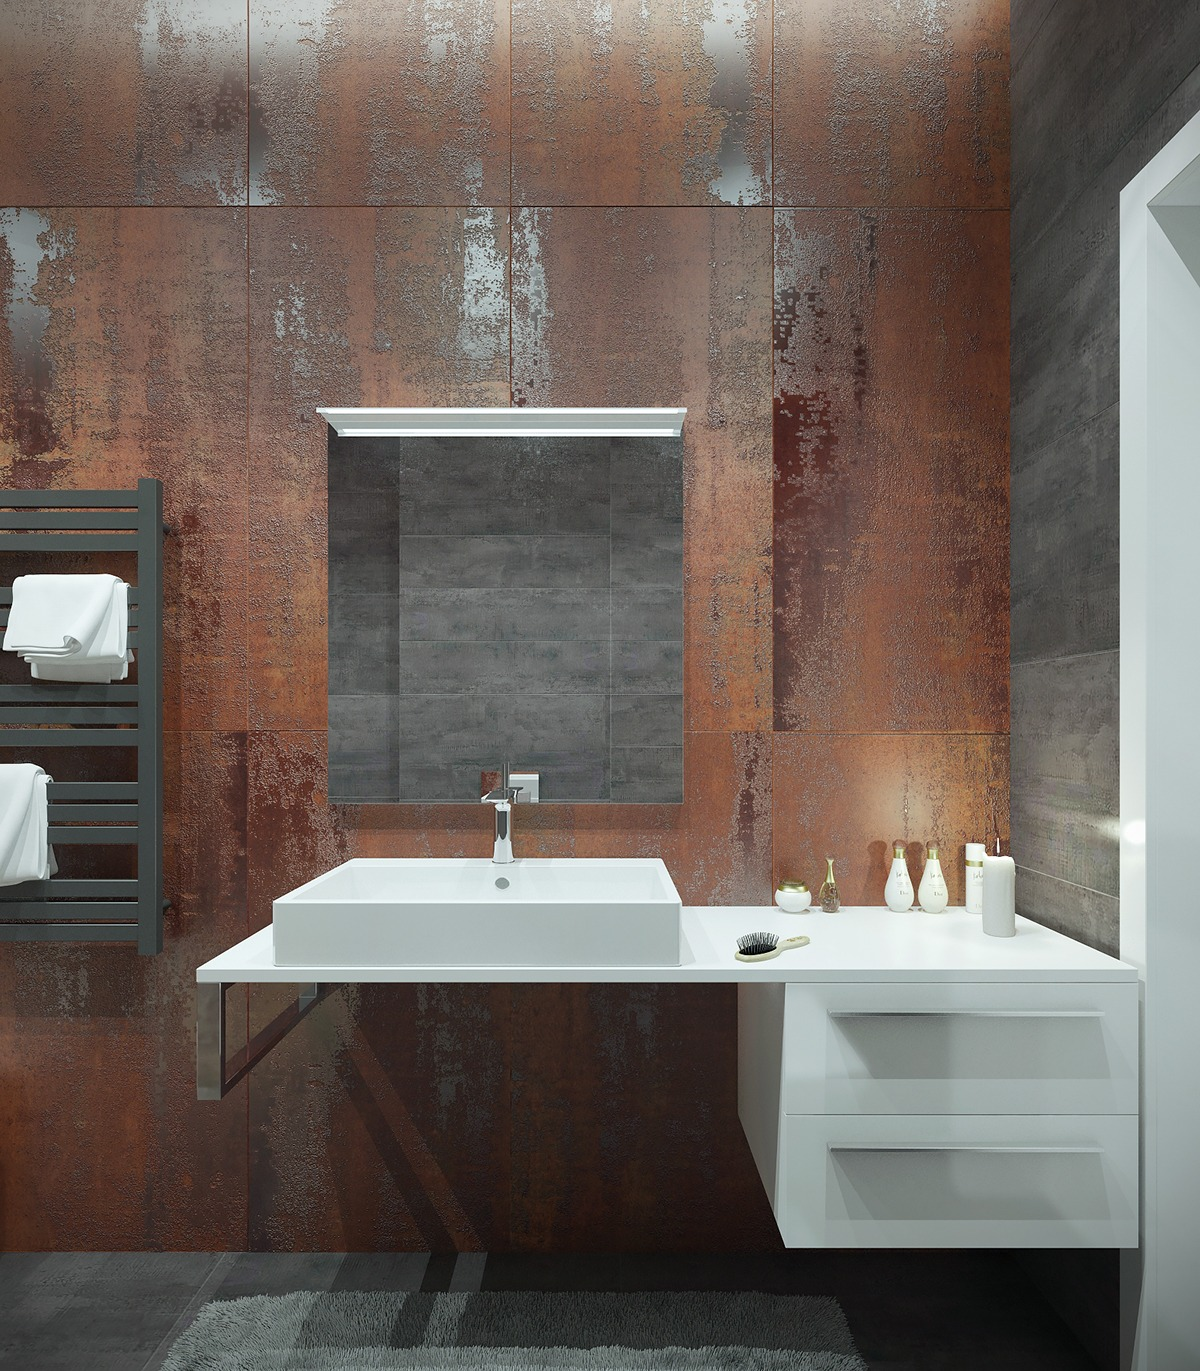 Exposed concrete concrete walls and wall ideas on pinterest for Bathroom ideas industrial